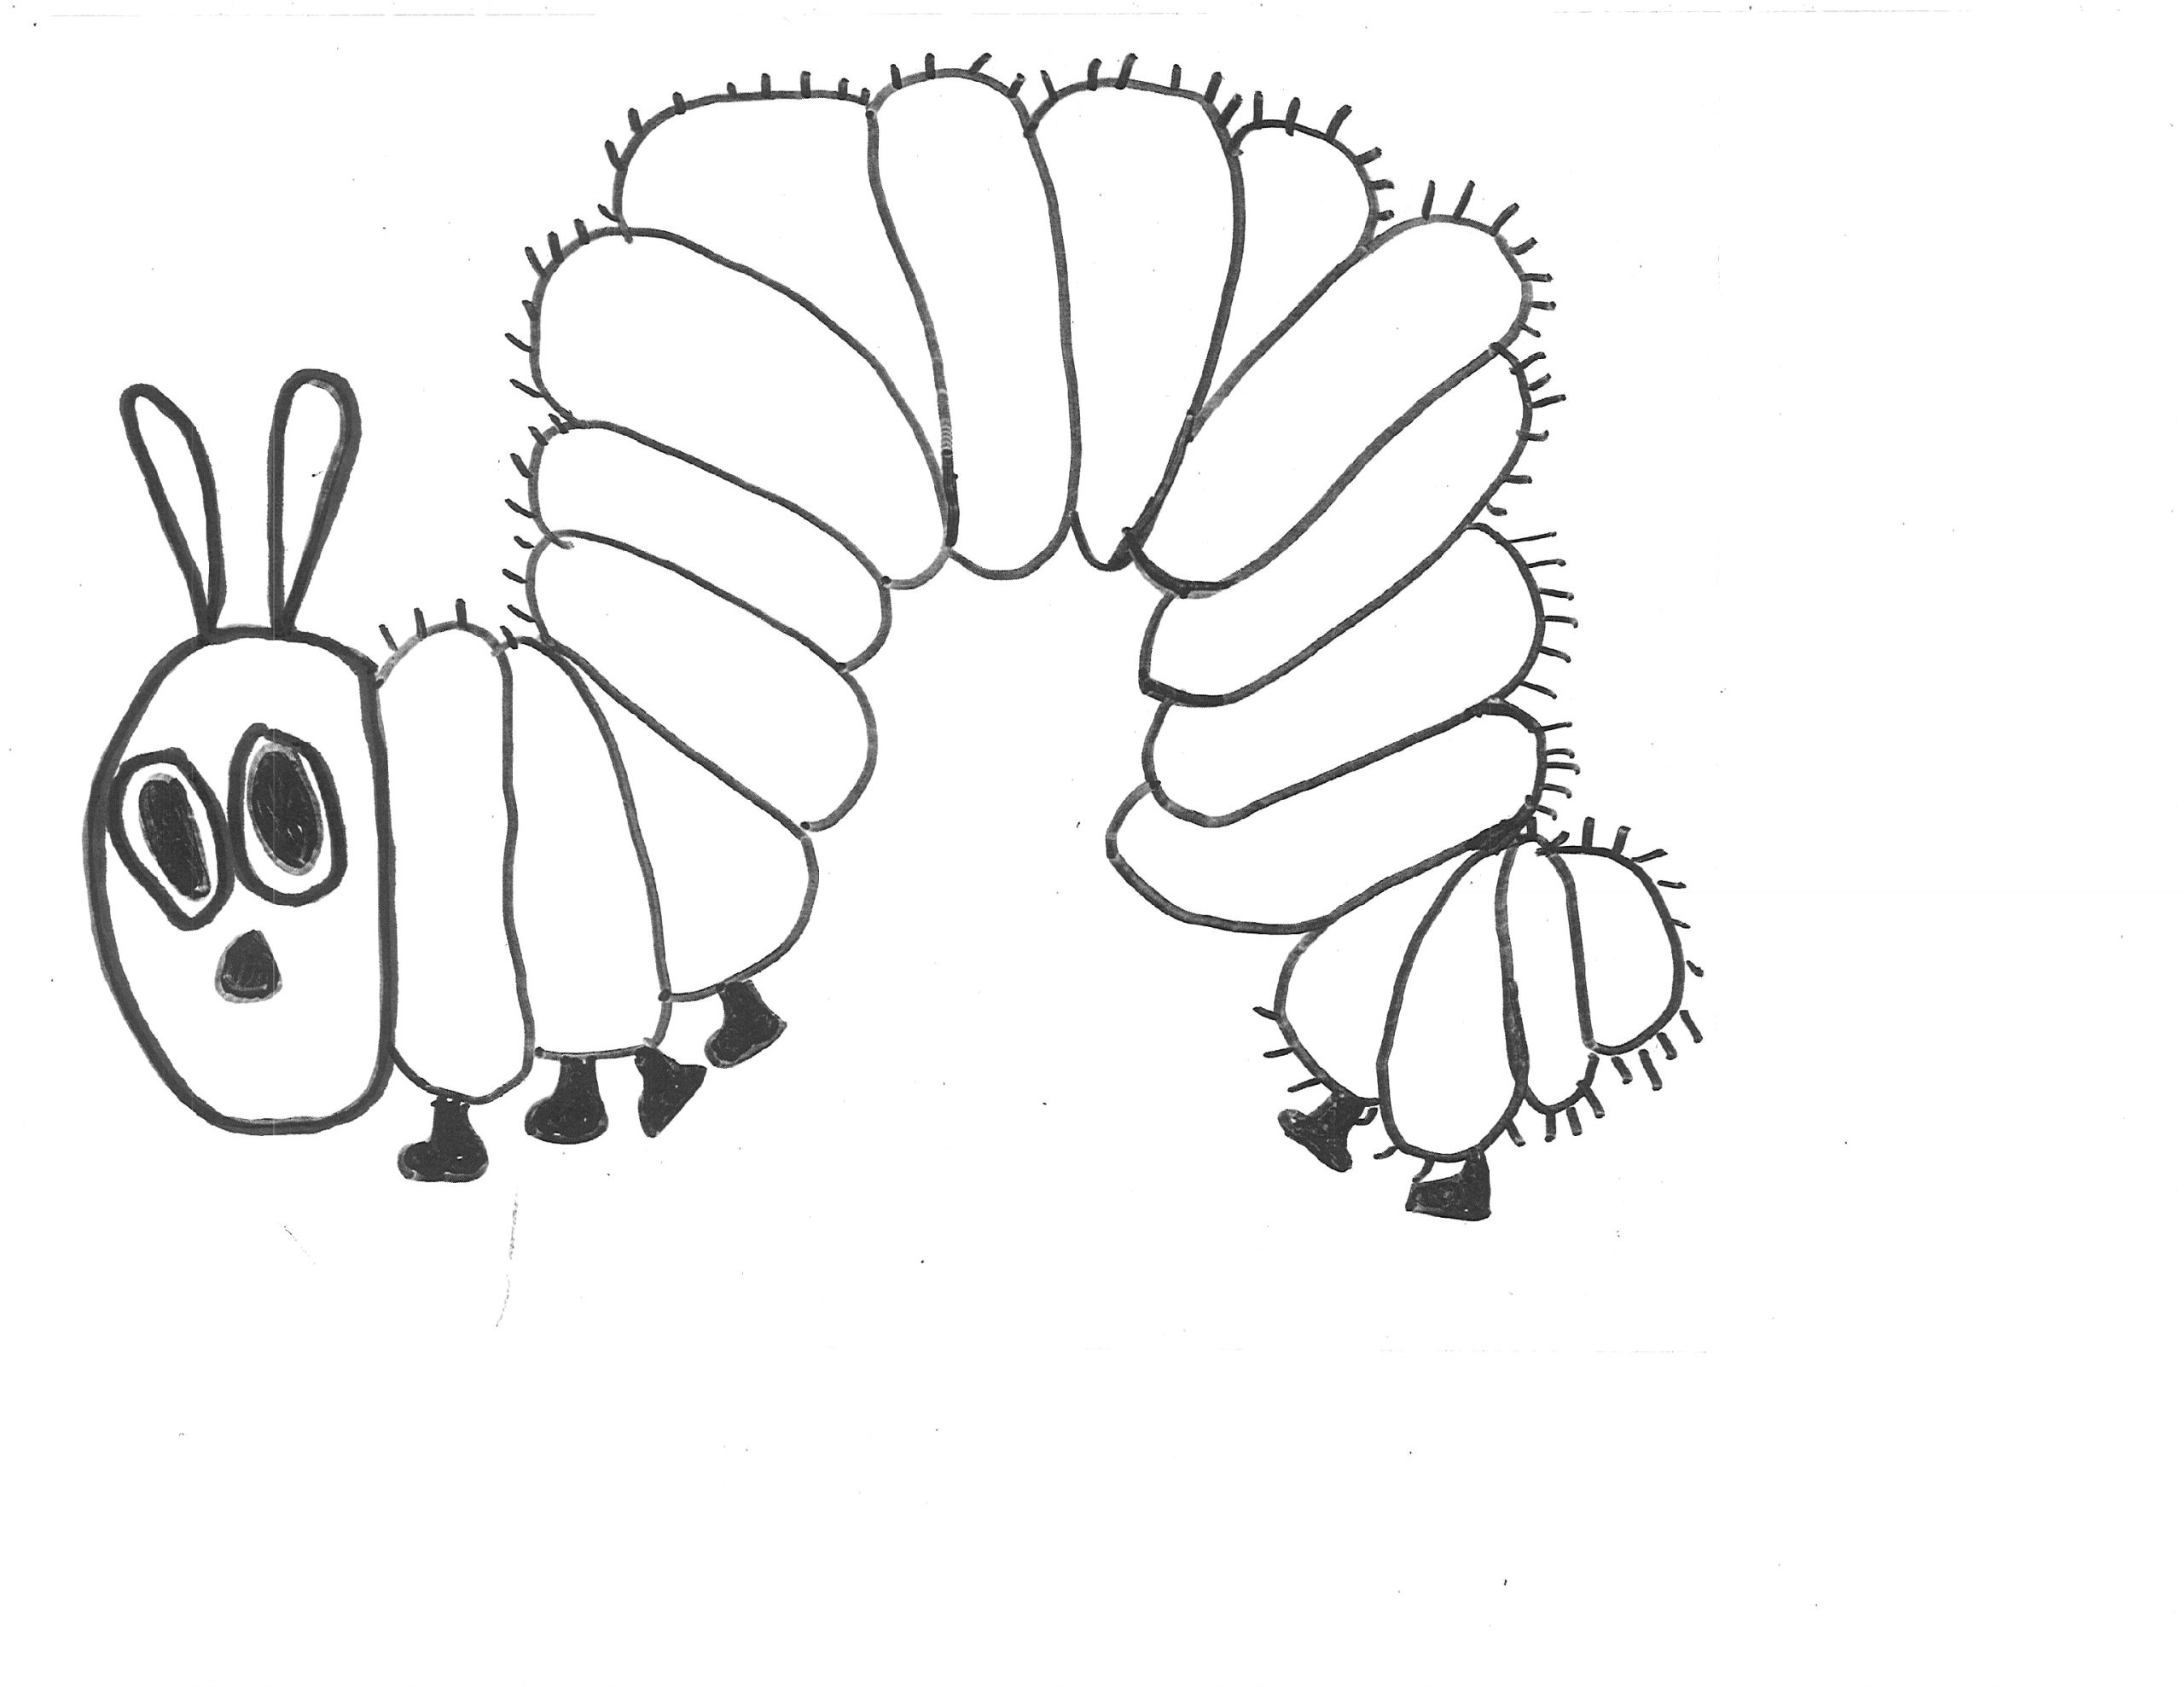 The Very Clumsy Click Beetle Coloring Pages Great Image Of the Very Clumsy Beetle Coloring Pages